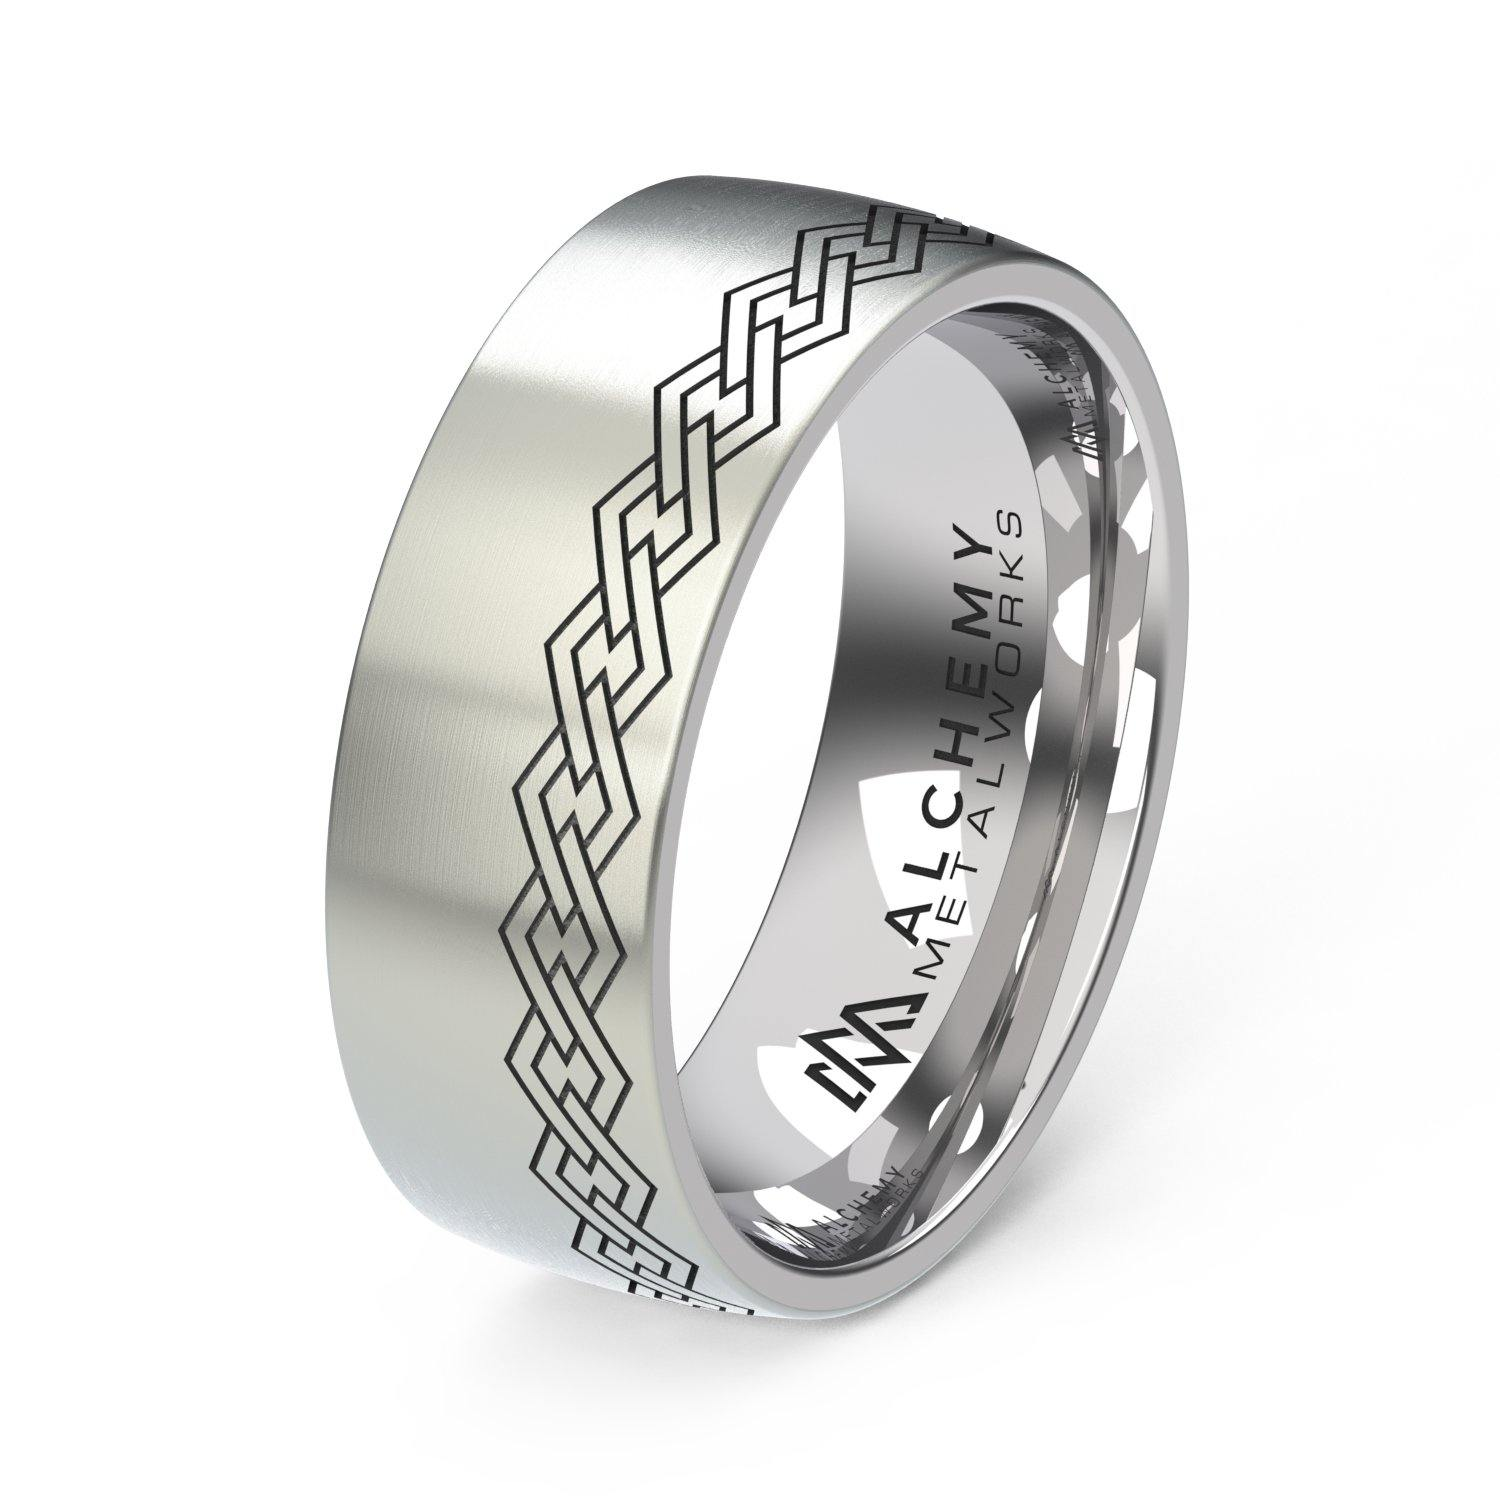 Laser Engraved Titanium Ring - Chain Links, Offset